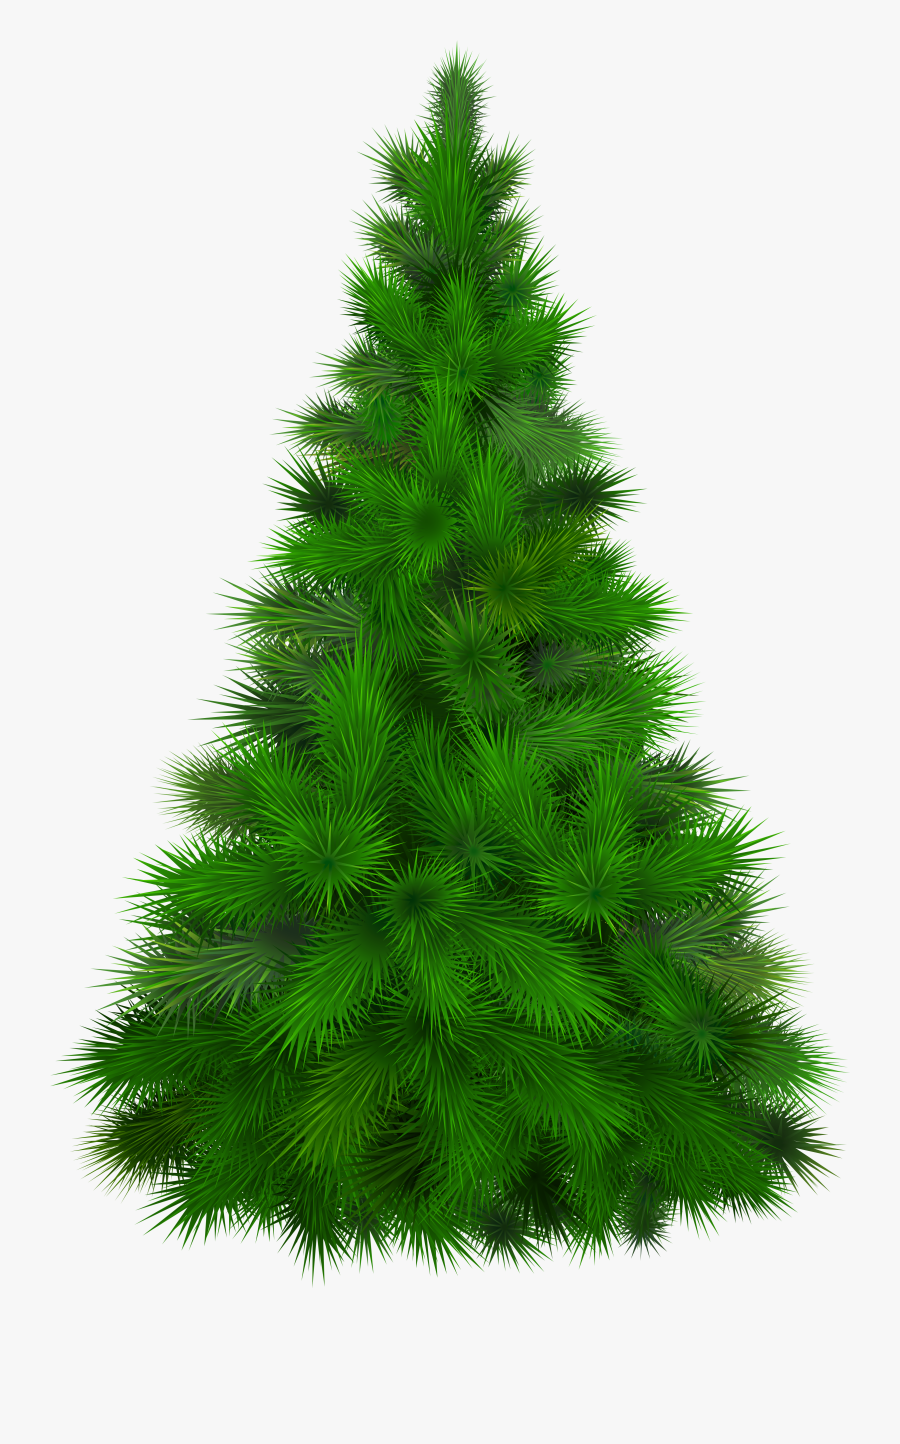 Pine Tree Clipart Png, Transparent Clipart